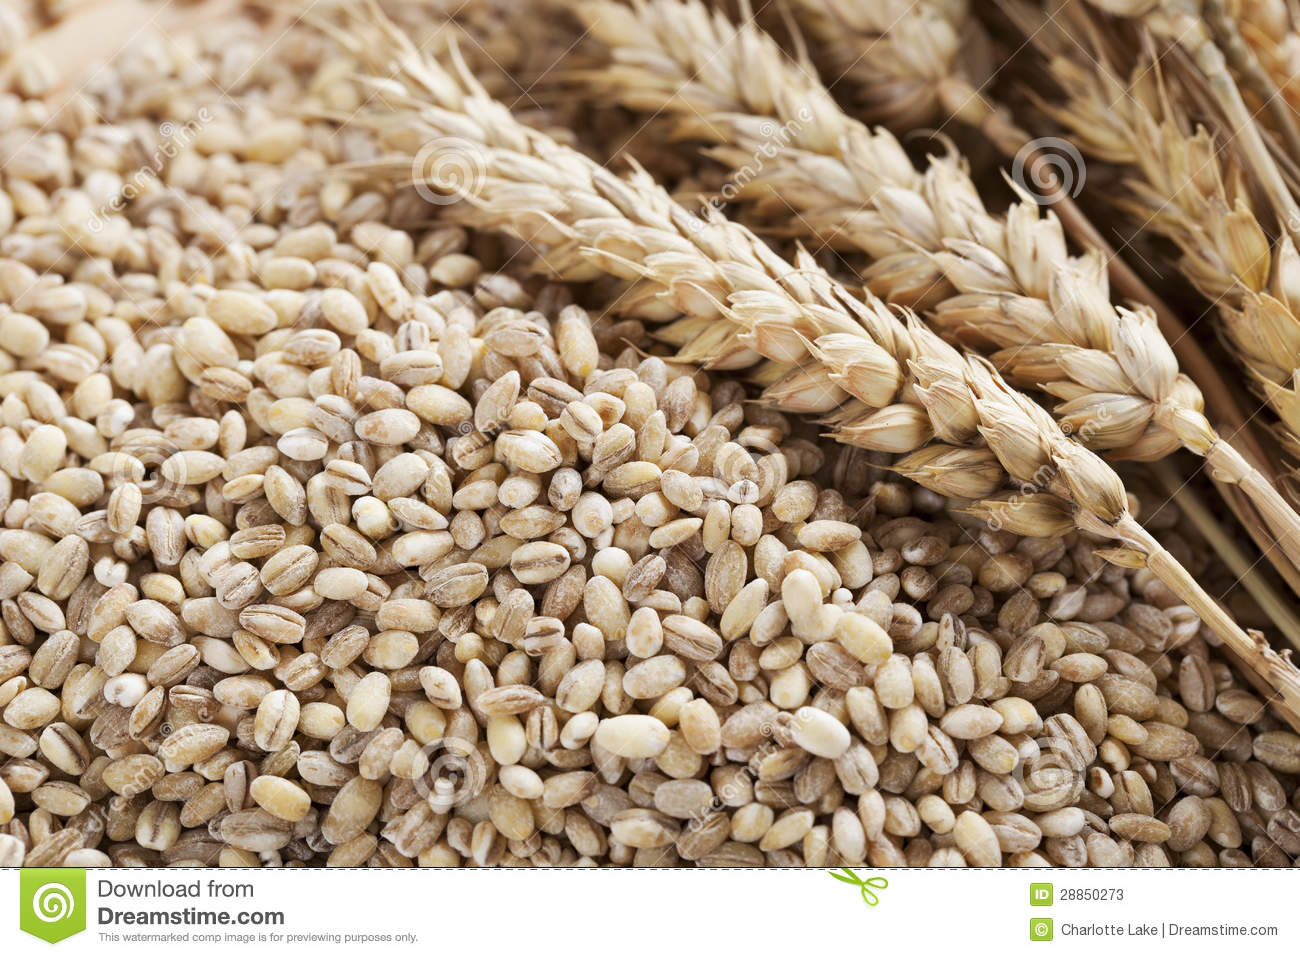 Barley Grains And Stalks Stock Photos - Image: 28850273